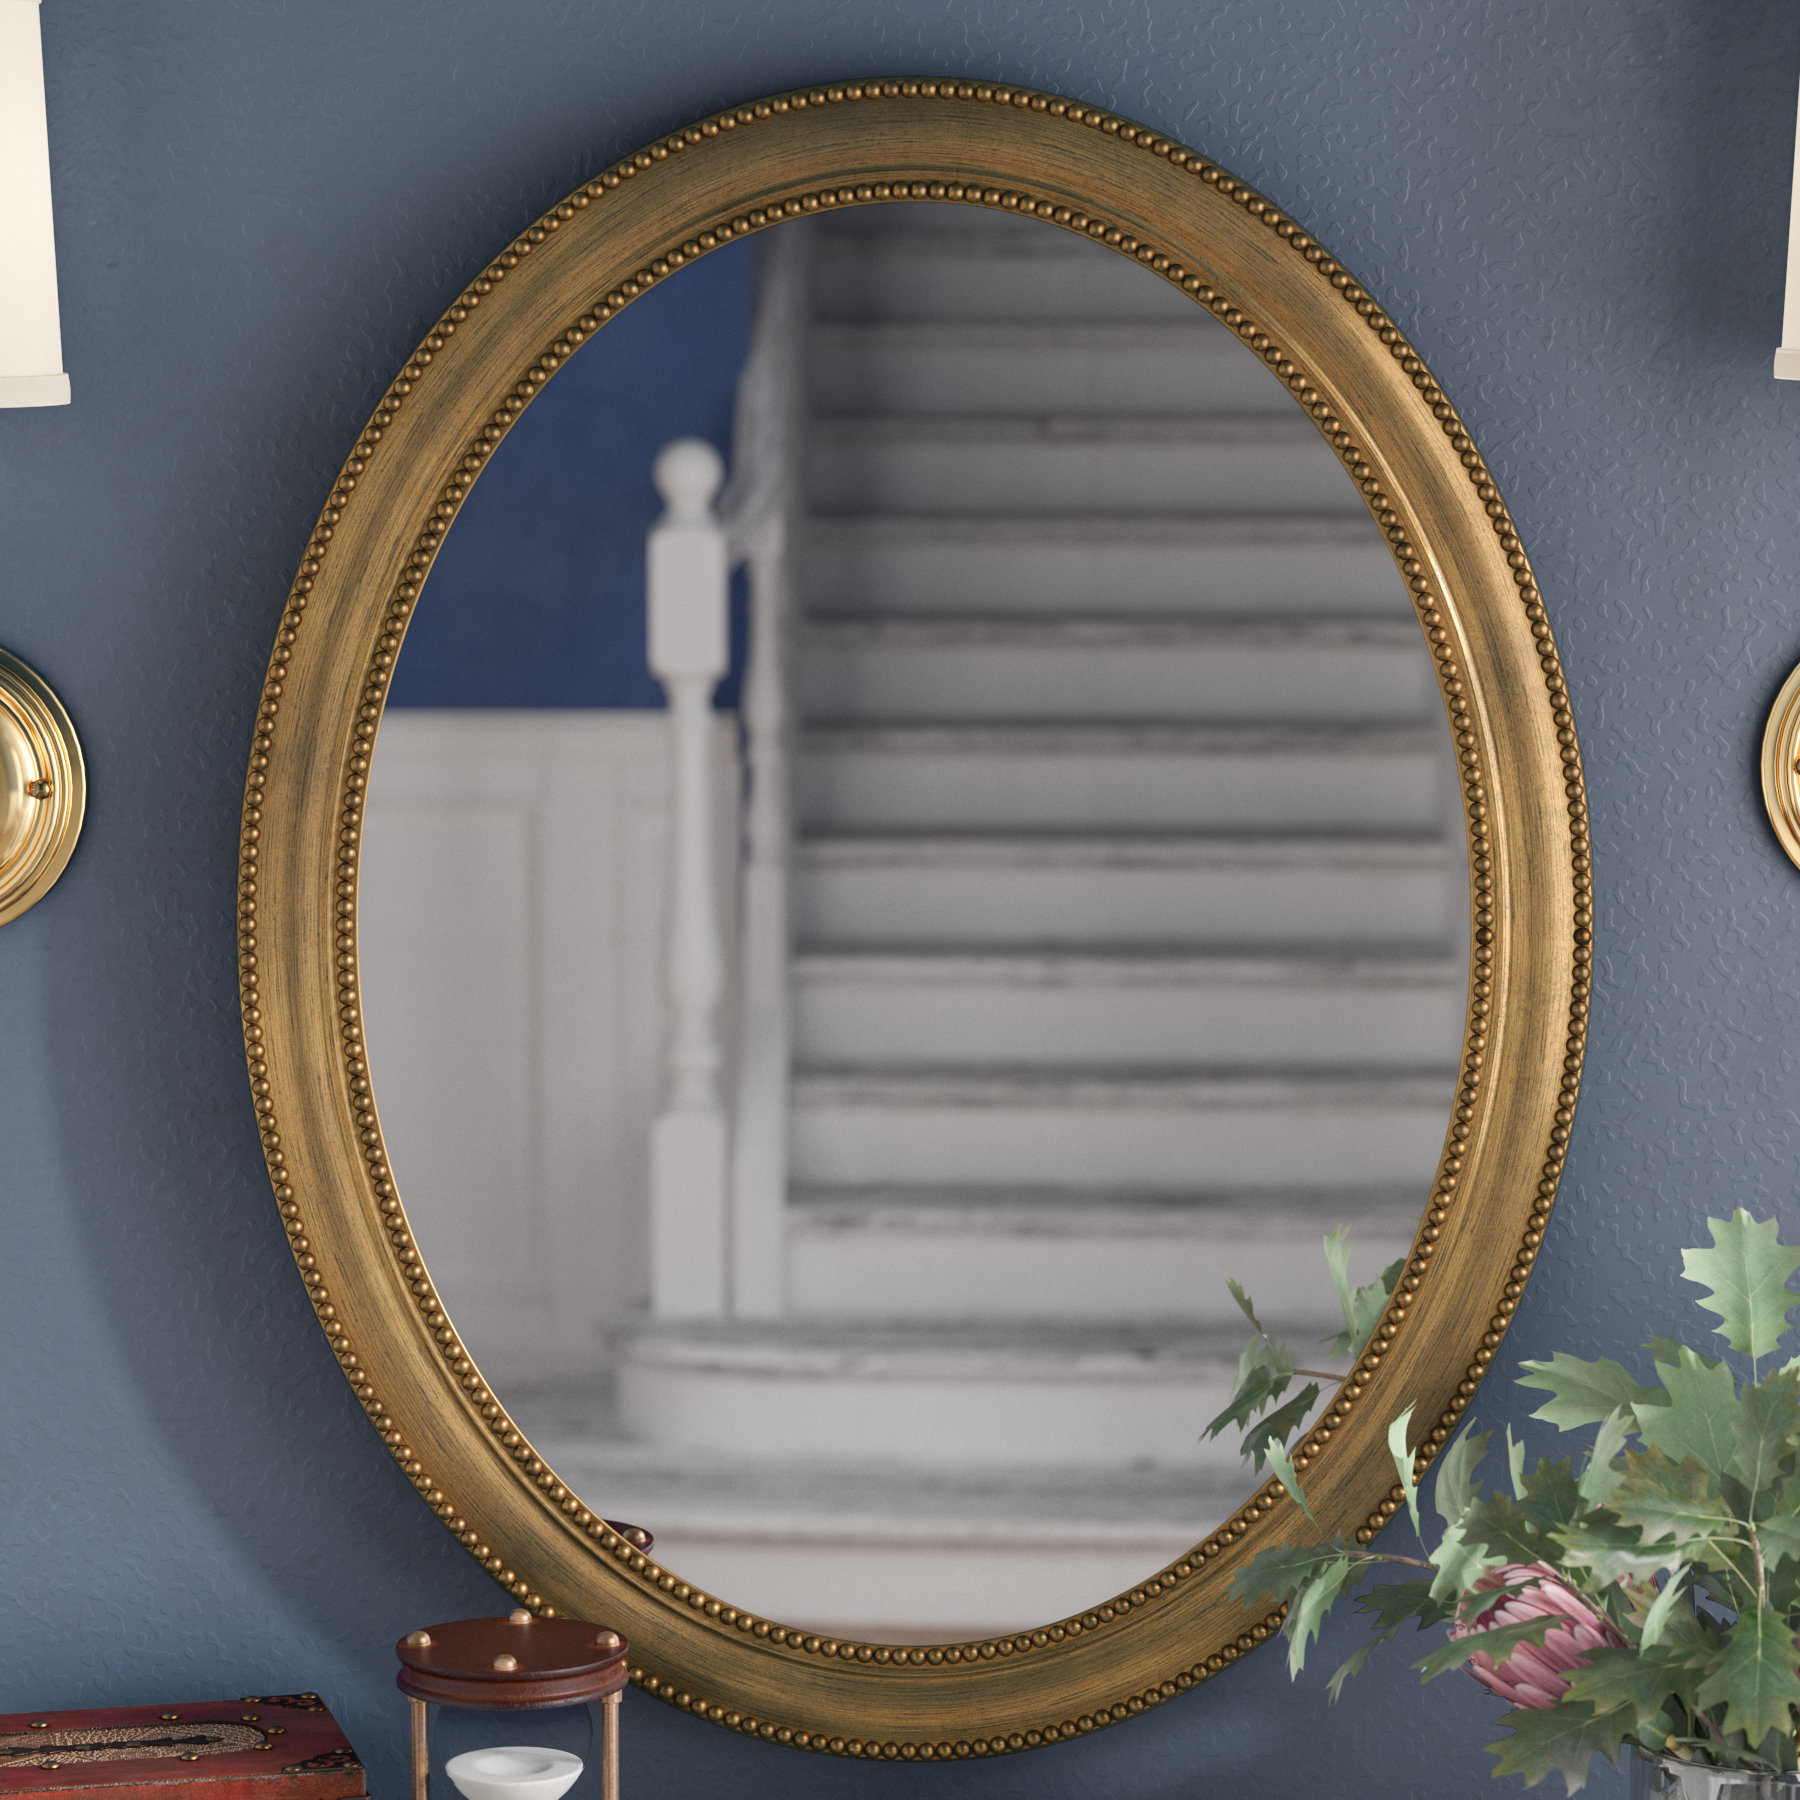 Oval Rope Mirror | Wayfair With Oval Metallic Accent Mirrors (Image 18 of 20)